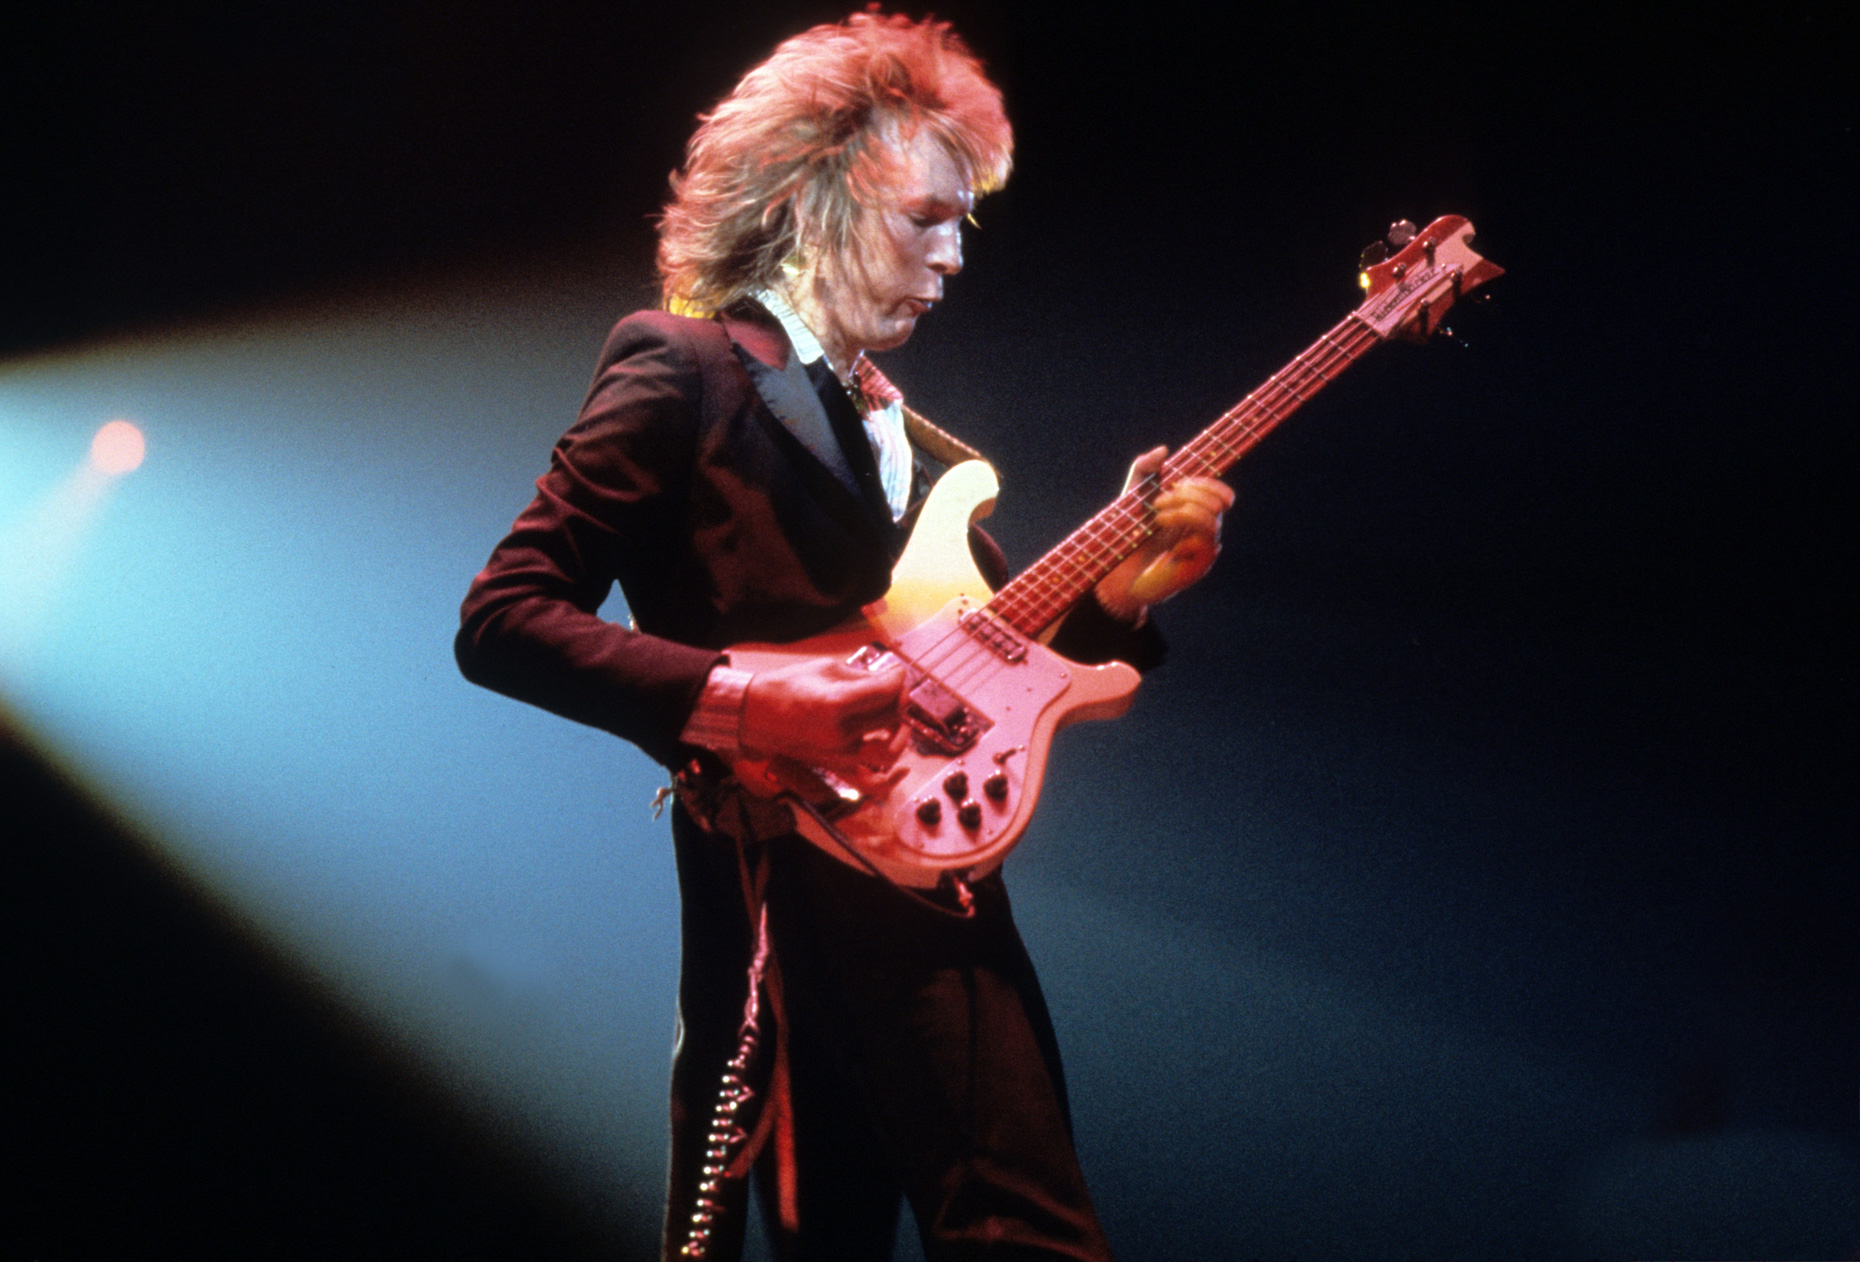 YES-Chris Squire